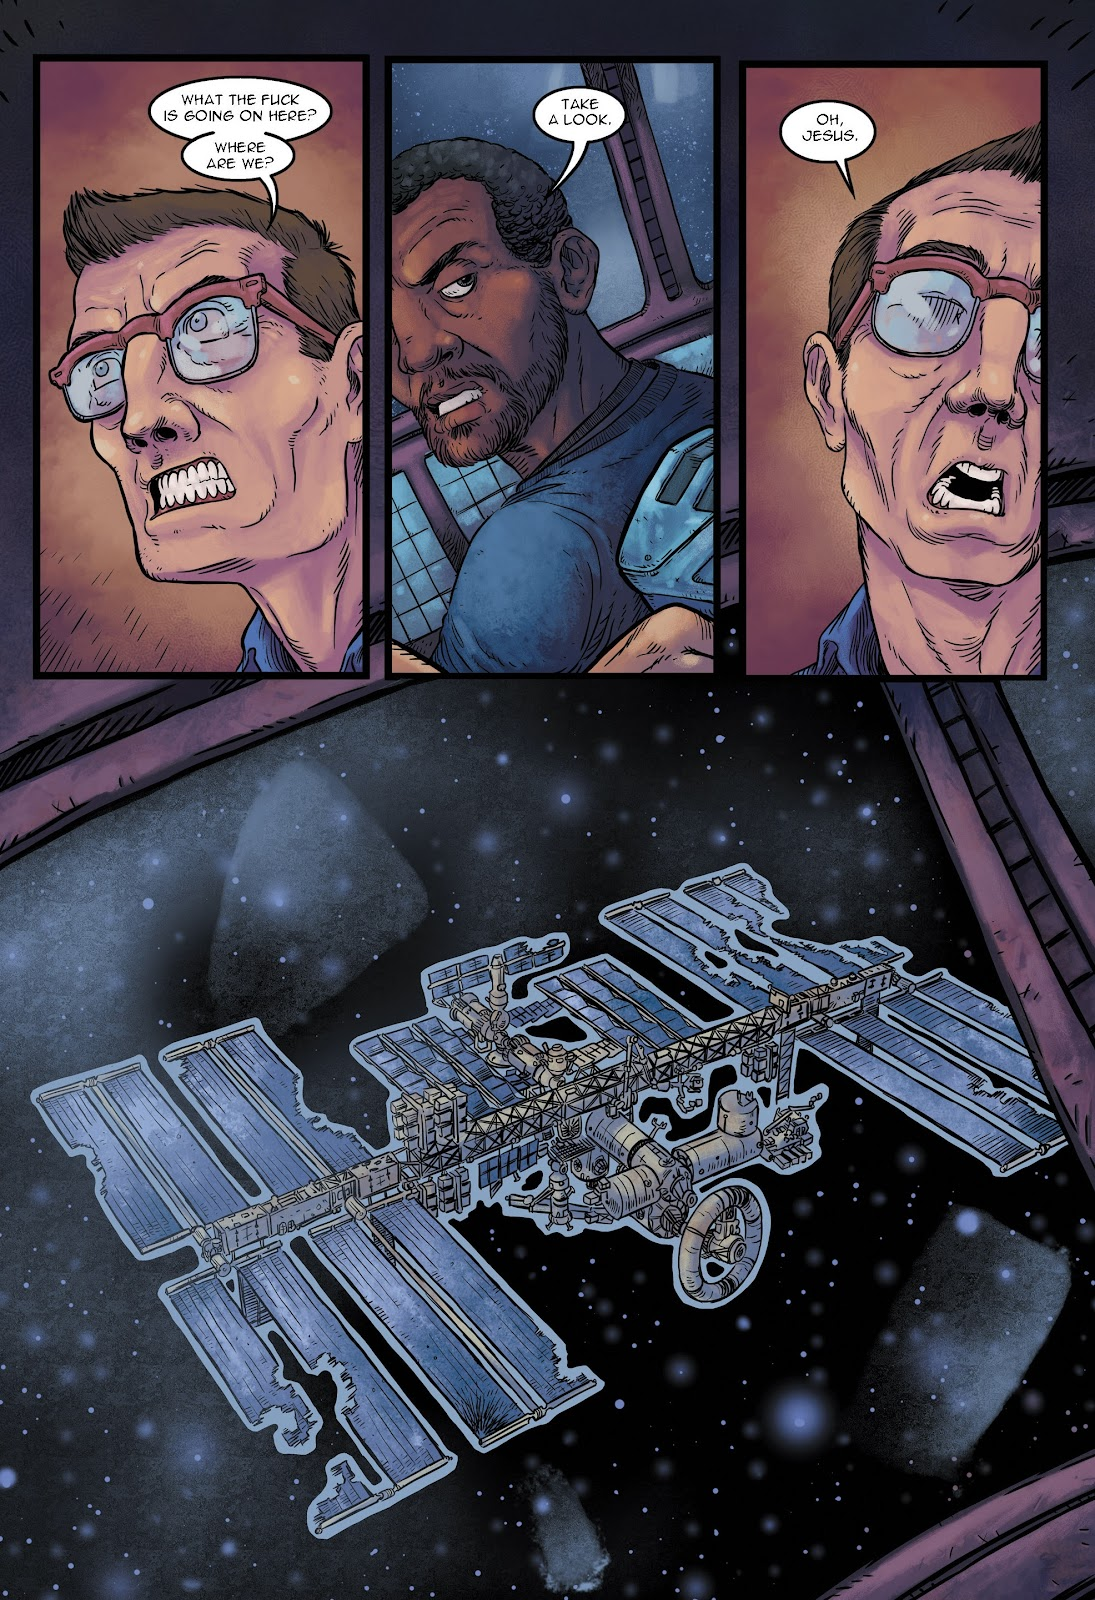 Read online Impossible comic -  Issue # TPB - 31